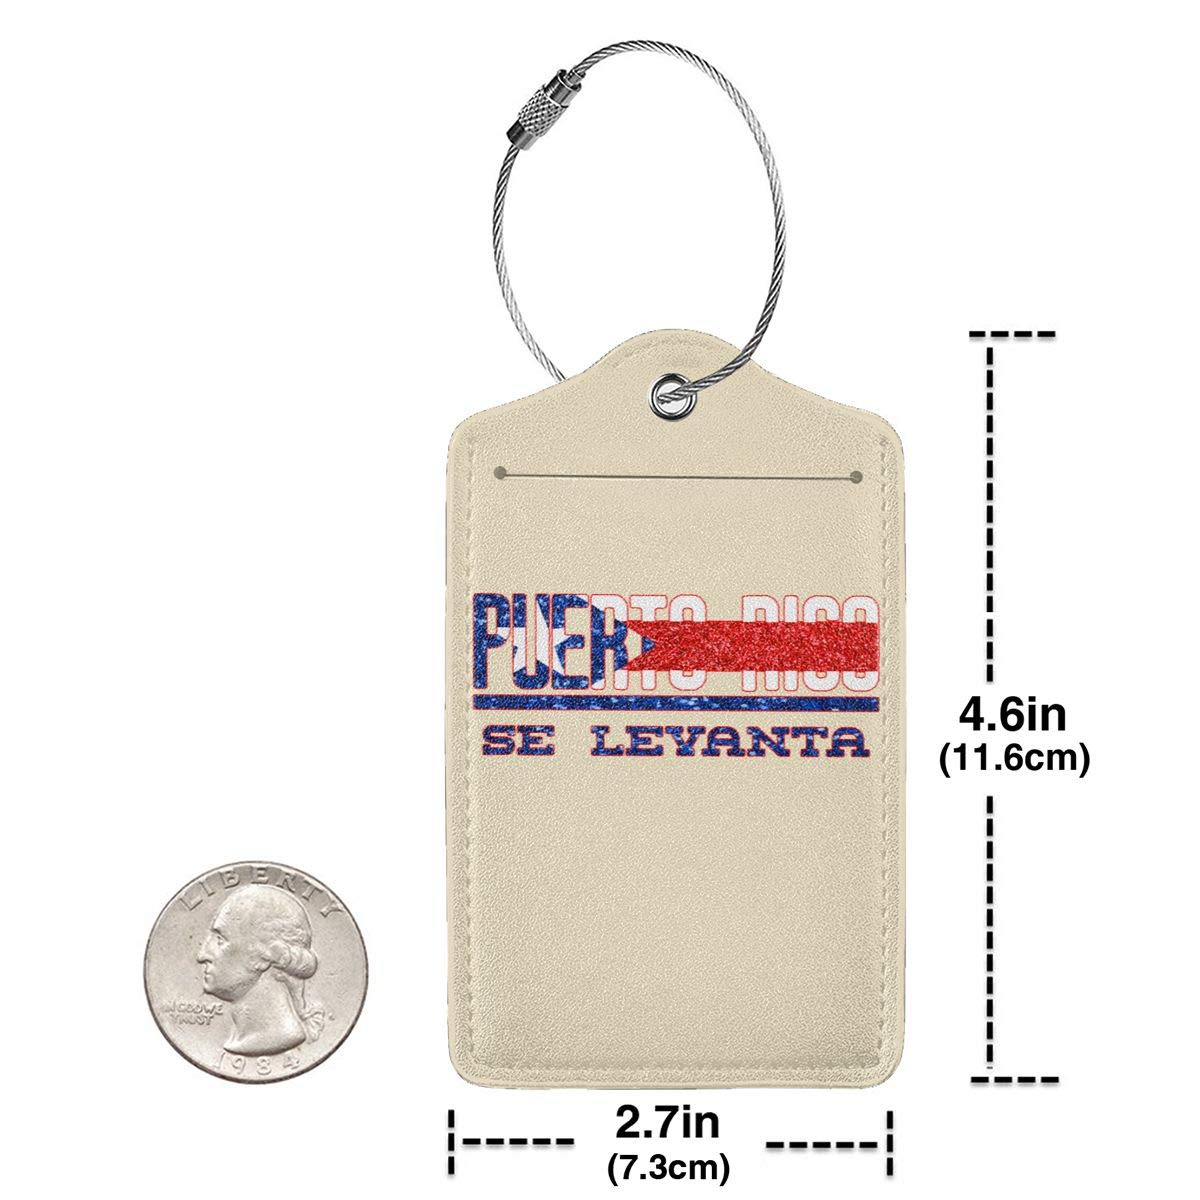 Puerto Rico Se Levanta Pray For Puerto Rico Leather Luggage Tag Travel ID Label For Baggage Suitcase